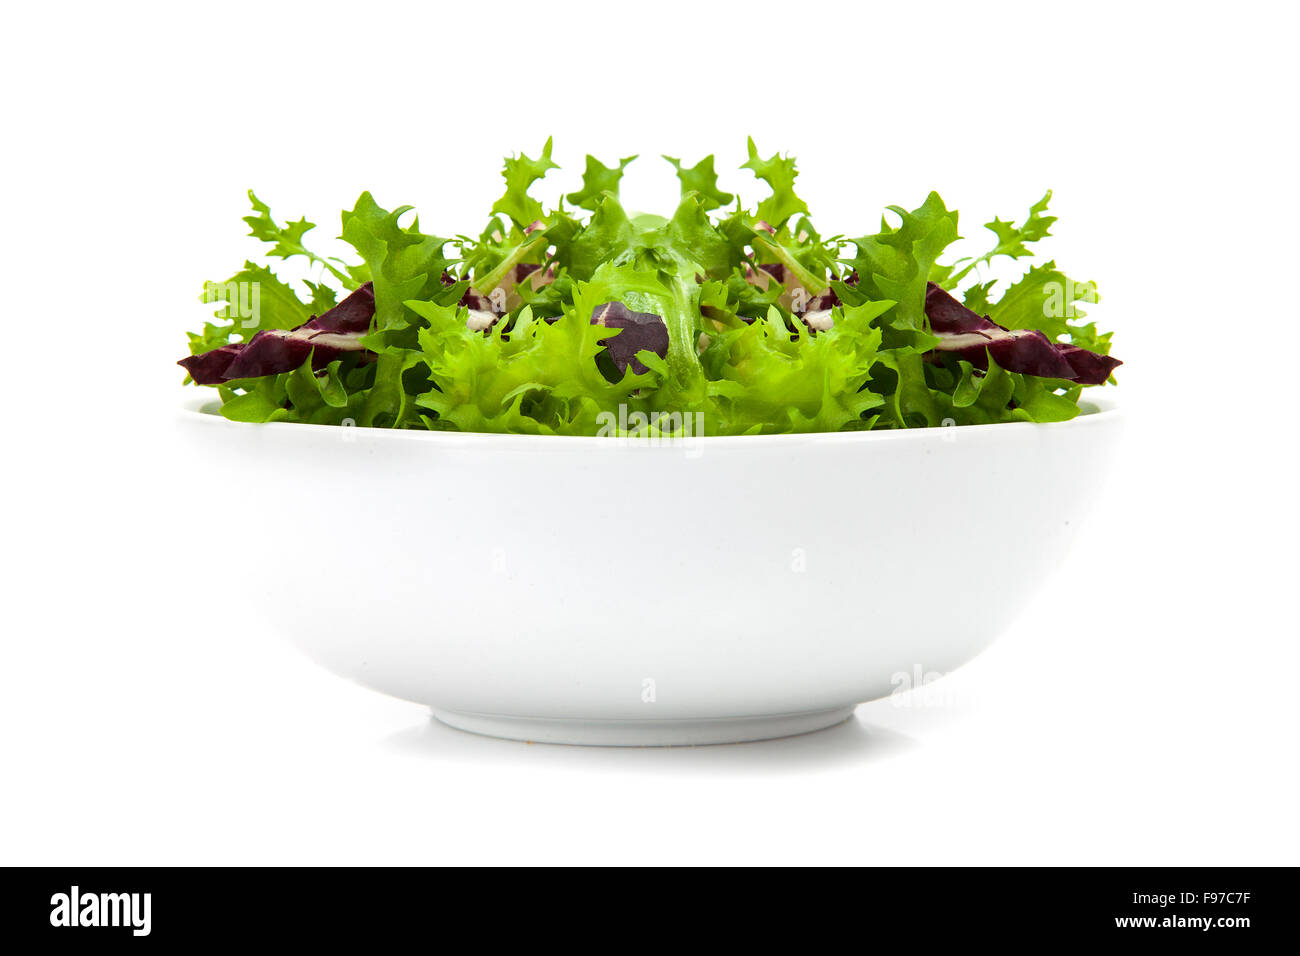 Bowl of mixed Salad with rucola, frisee, radicchio and lamb's lettuce. Isolated on white background - Stock Image